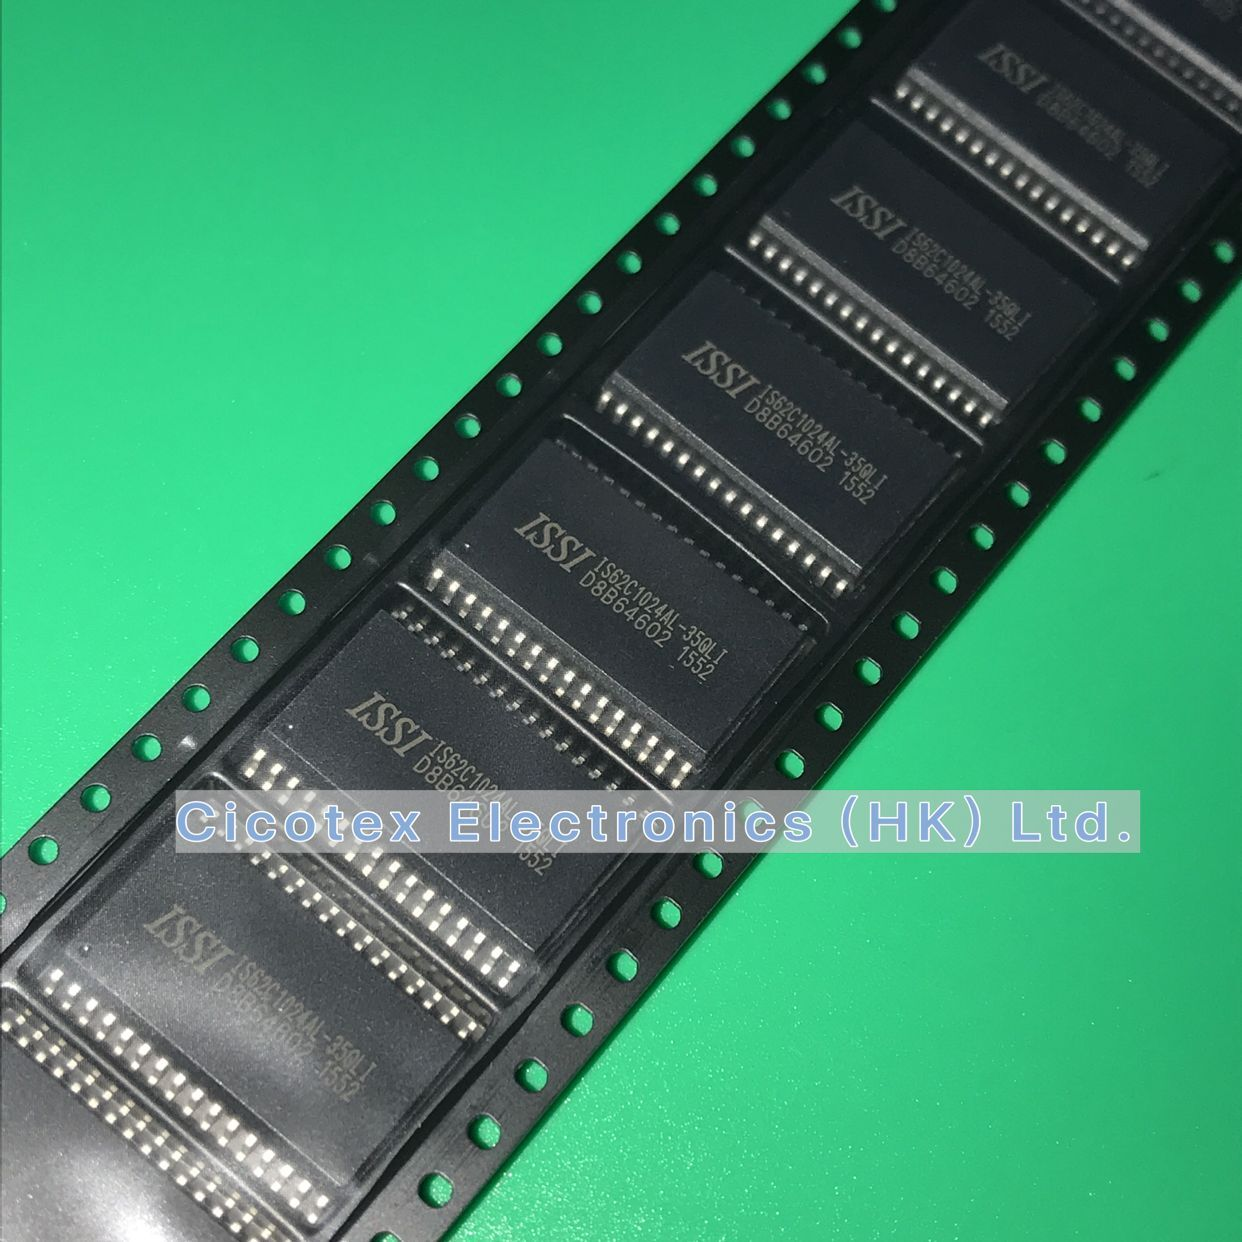 5pcs/lot IS62C1024AL-35QLI SOP32 IS62C1024 AL-35QLI IC SRAM 1MBIT 35NS 32SOP IS62C1024AL-35QLI-TR IS62C1024AL35QLI IS62C 1024AL